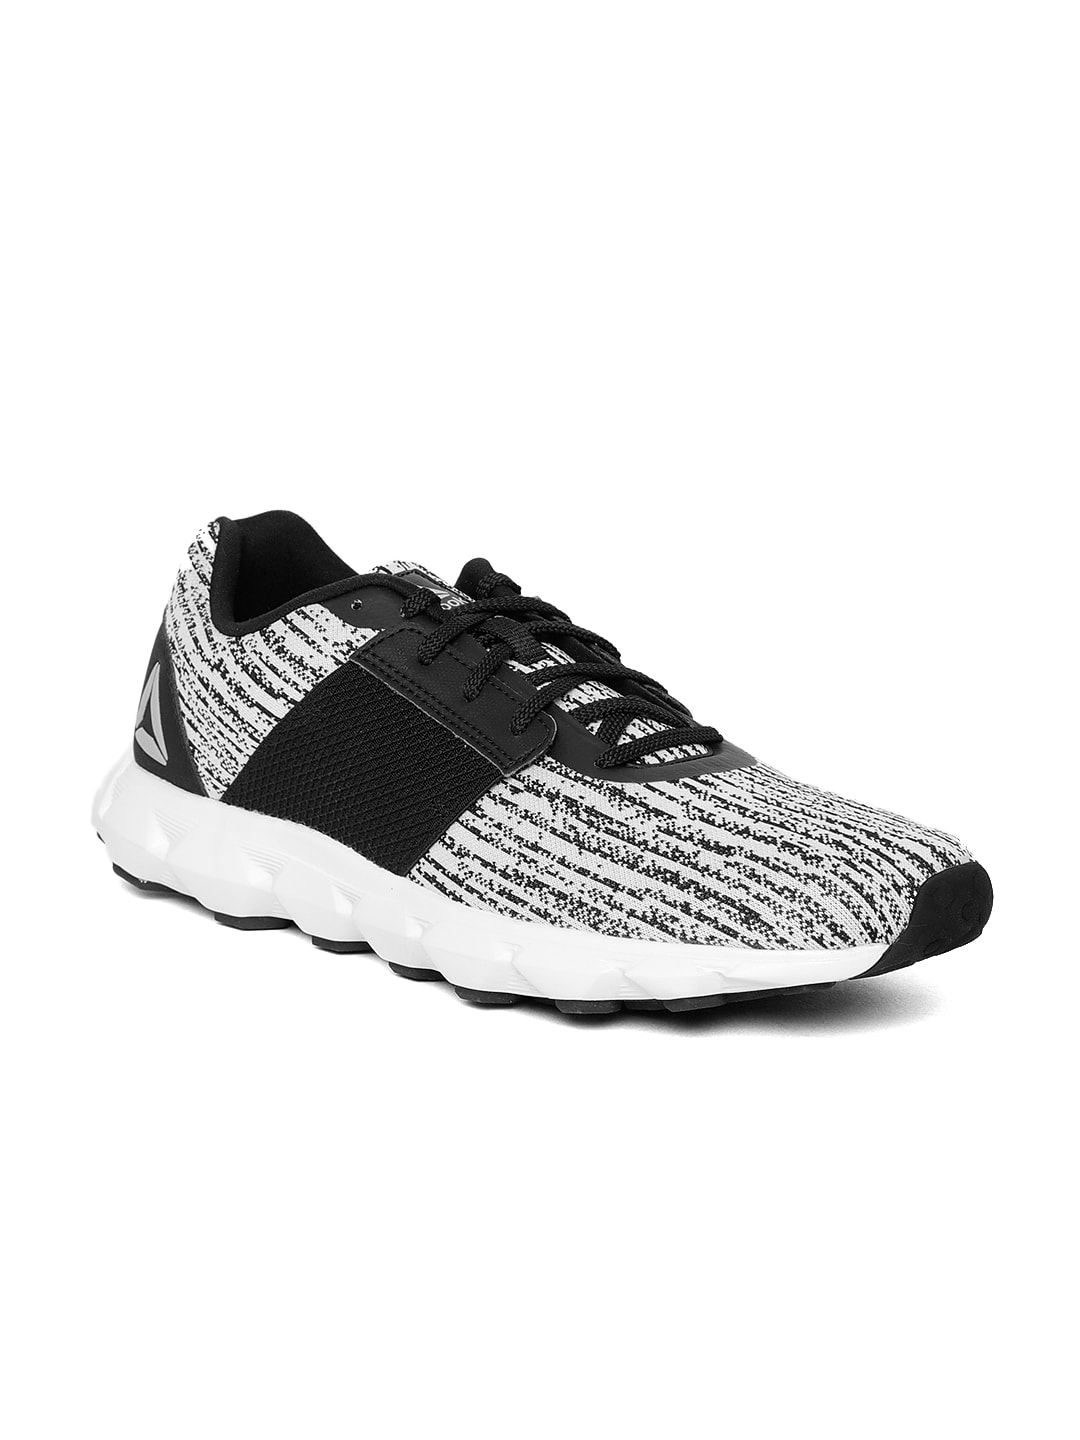 69171b2d038a1a Shoes Sports Heels - Buy Shoes Sports Heels online in India